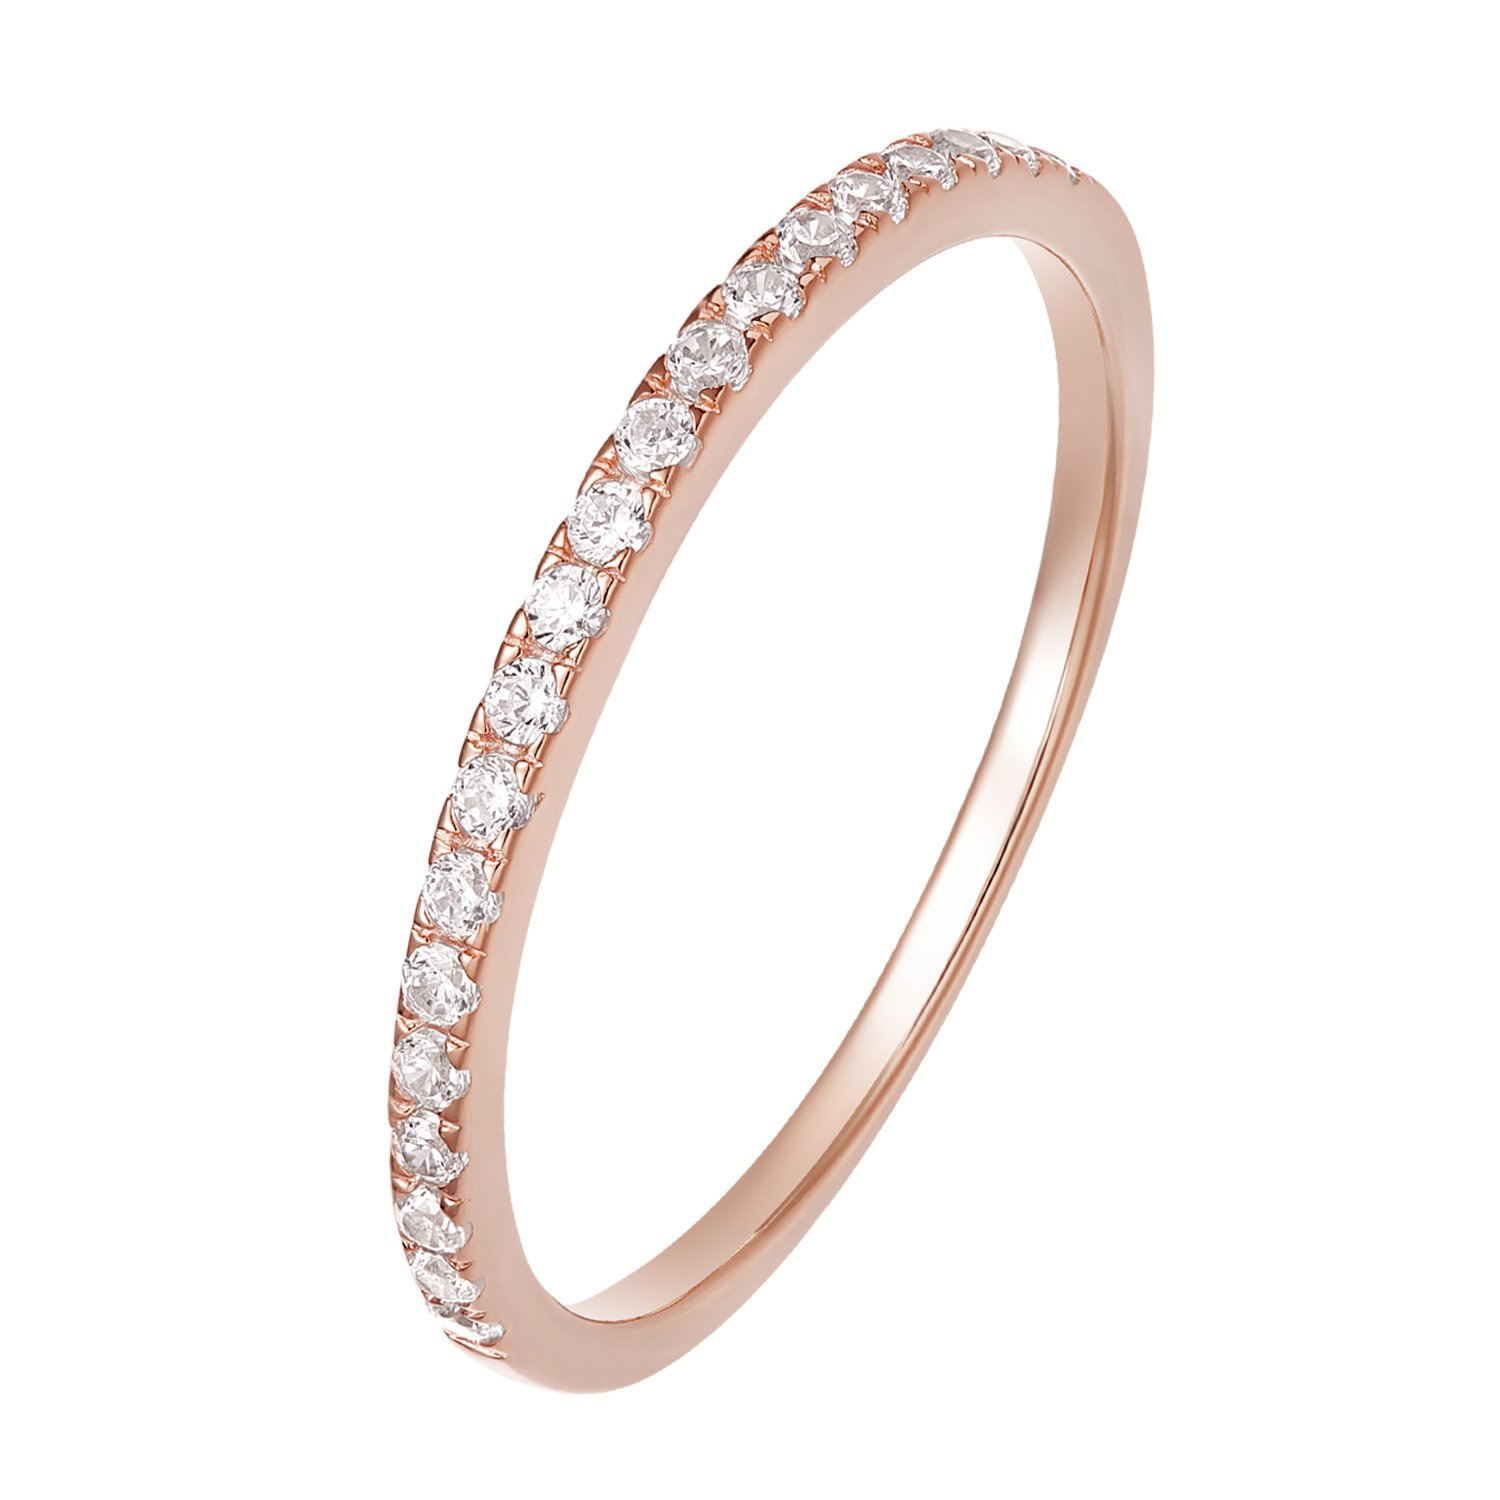 EAMTI 925 Sterling Silver Wedding Band Cubic Zirconia Half Eternity Stackable Engagement Ring (4: Rose Gold-Half Eternity, 7.5)